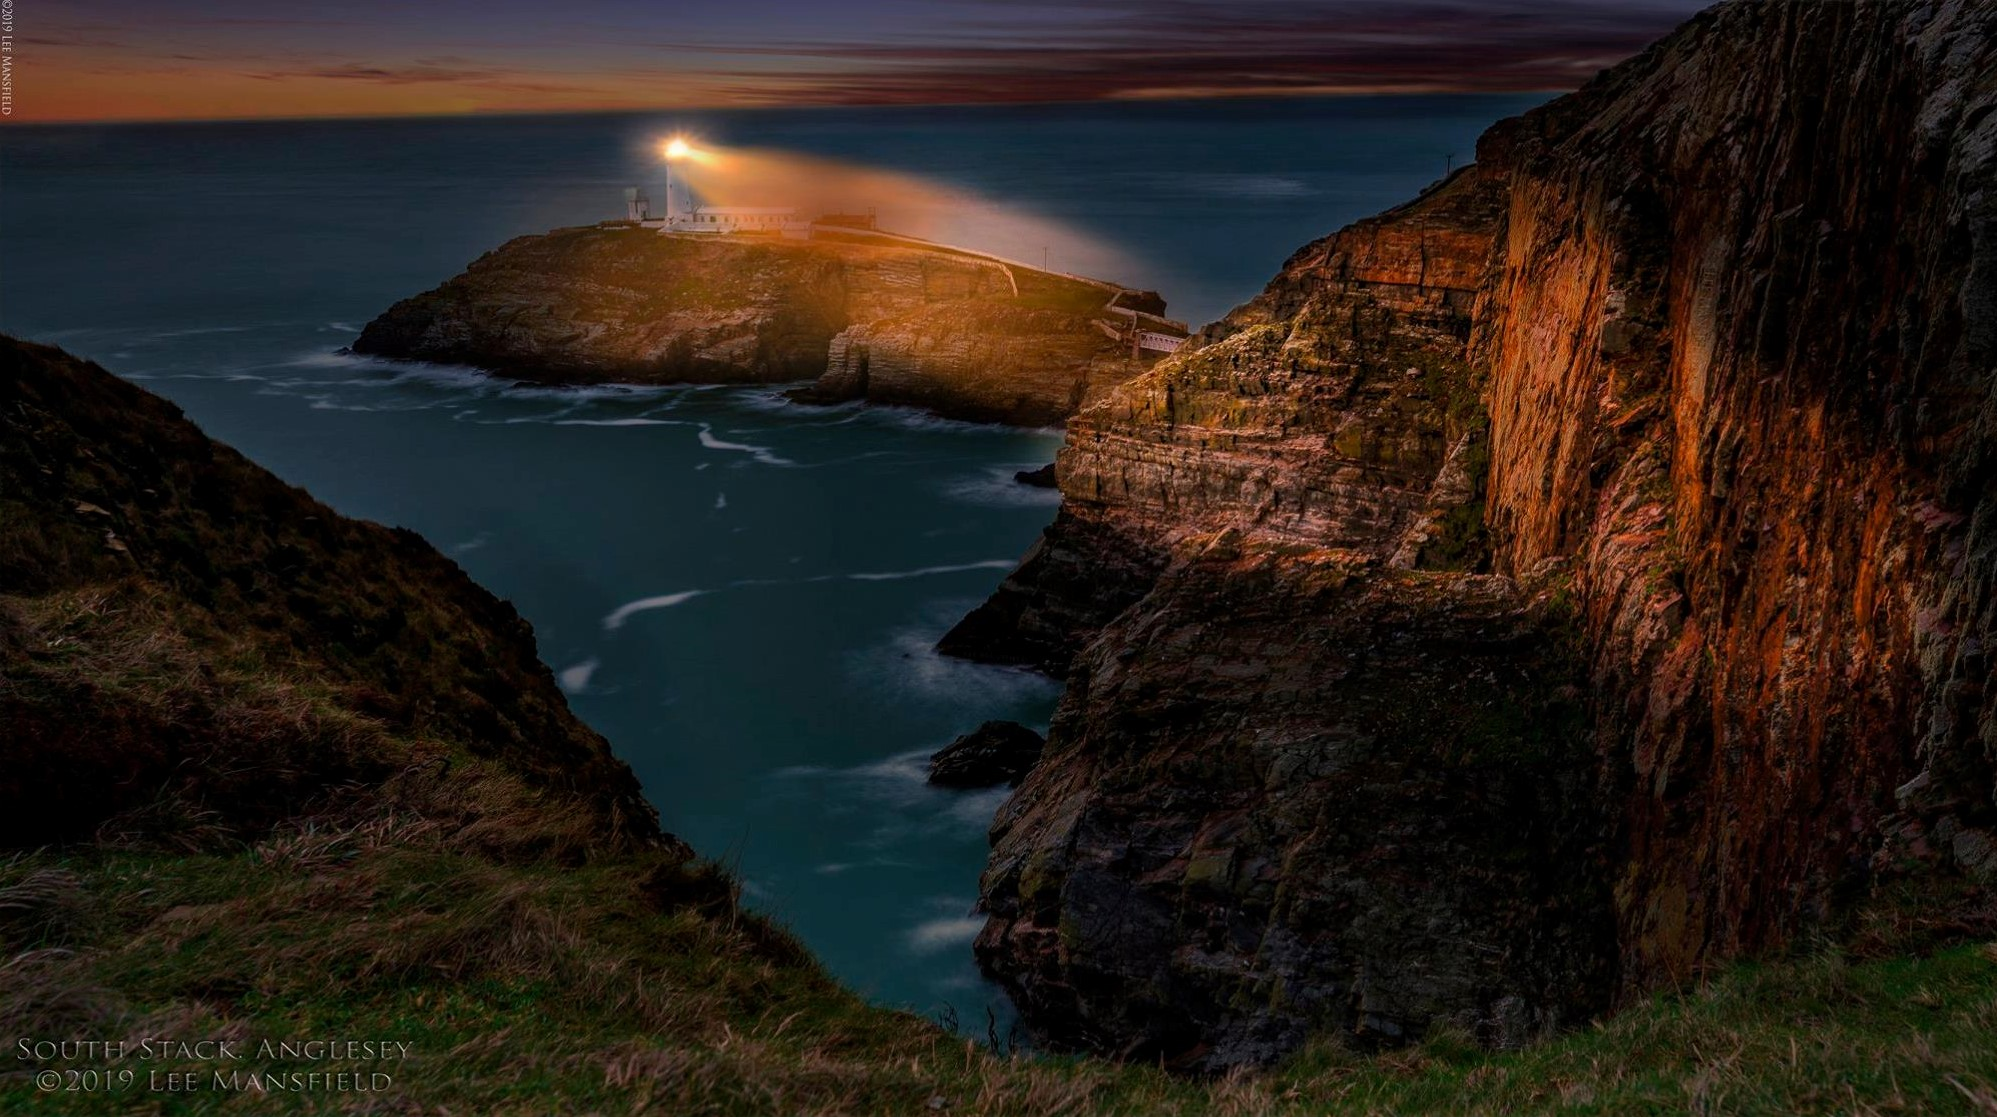 South Stack, Anglesey - blue hour